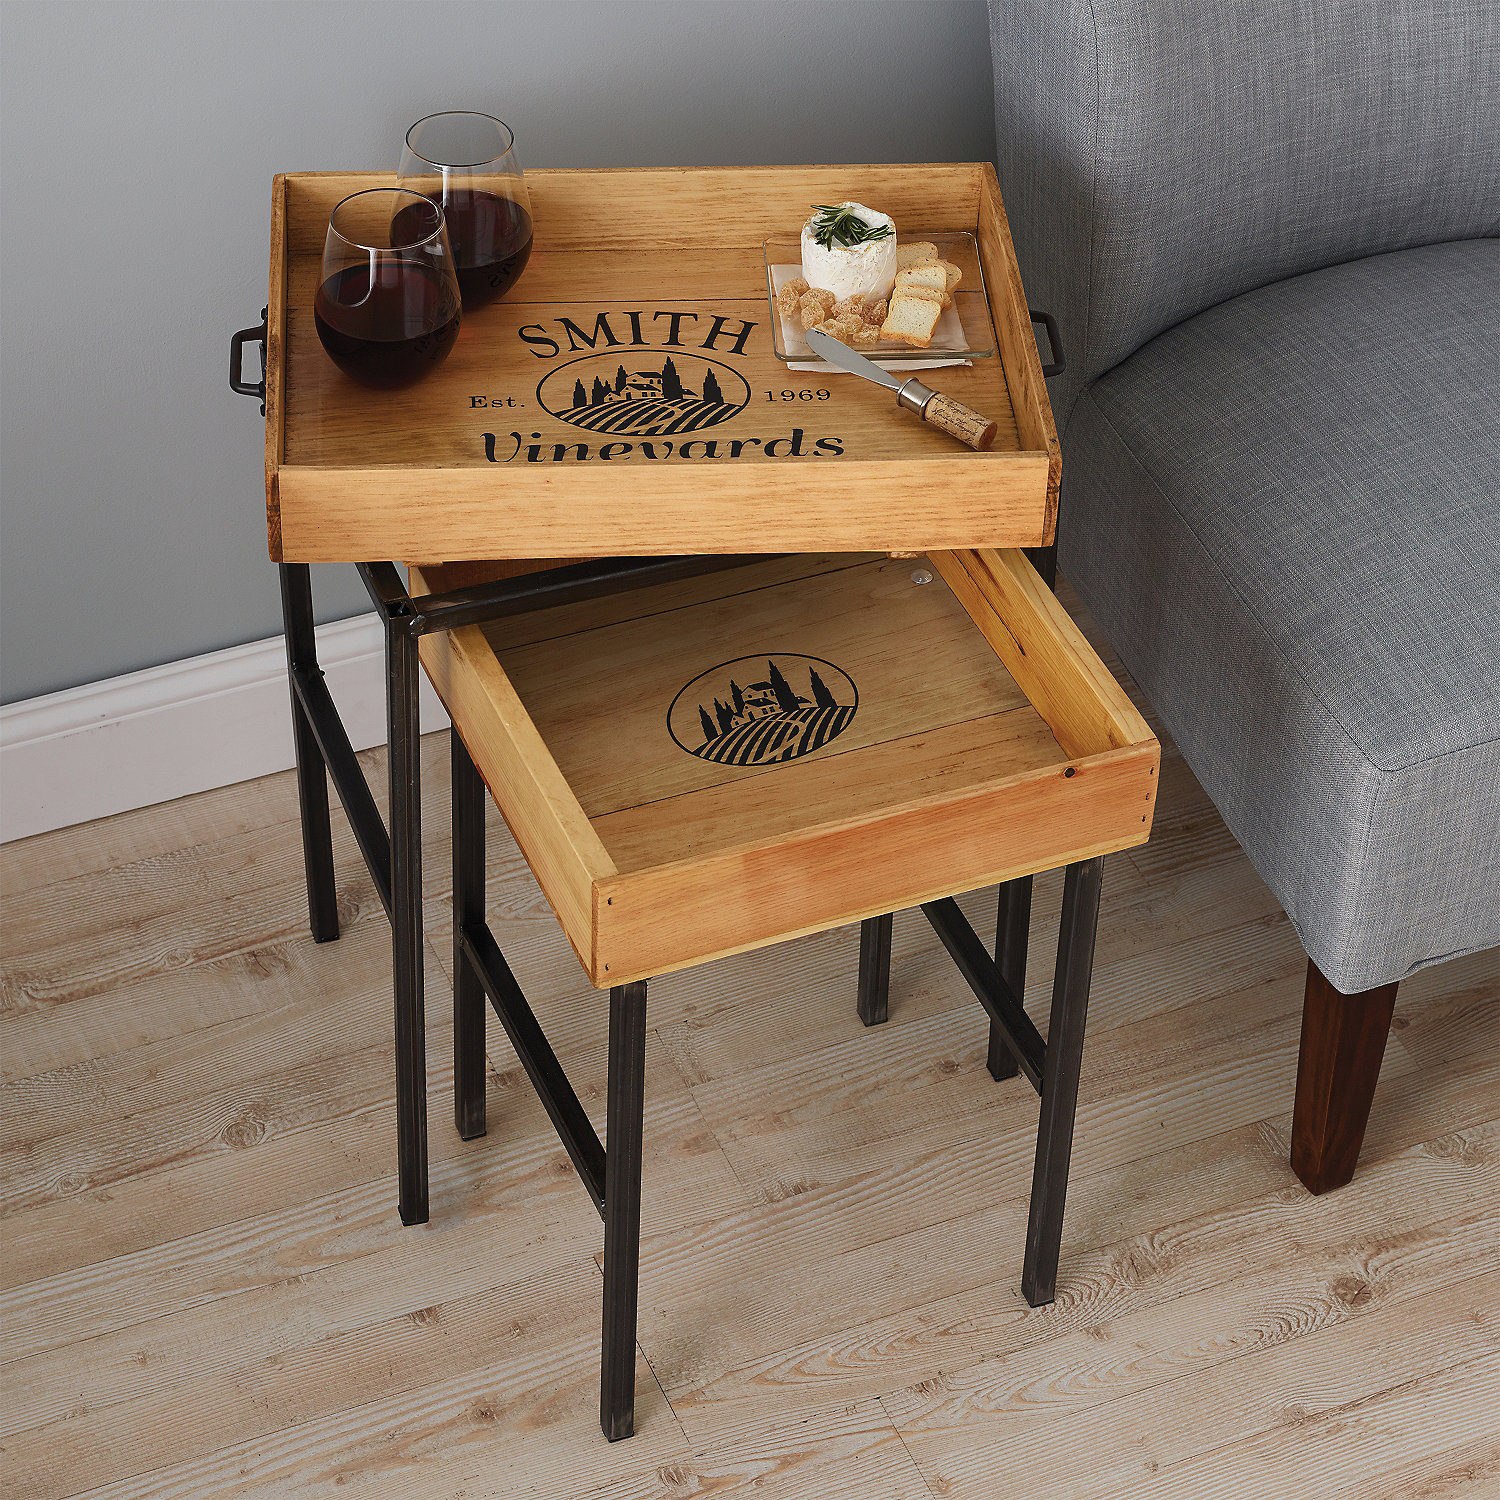 Tables wine furniture furniture wine enthusiast personalized wine crate tray nesting tables geotapseo Images